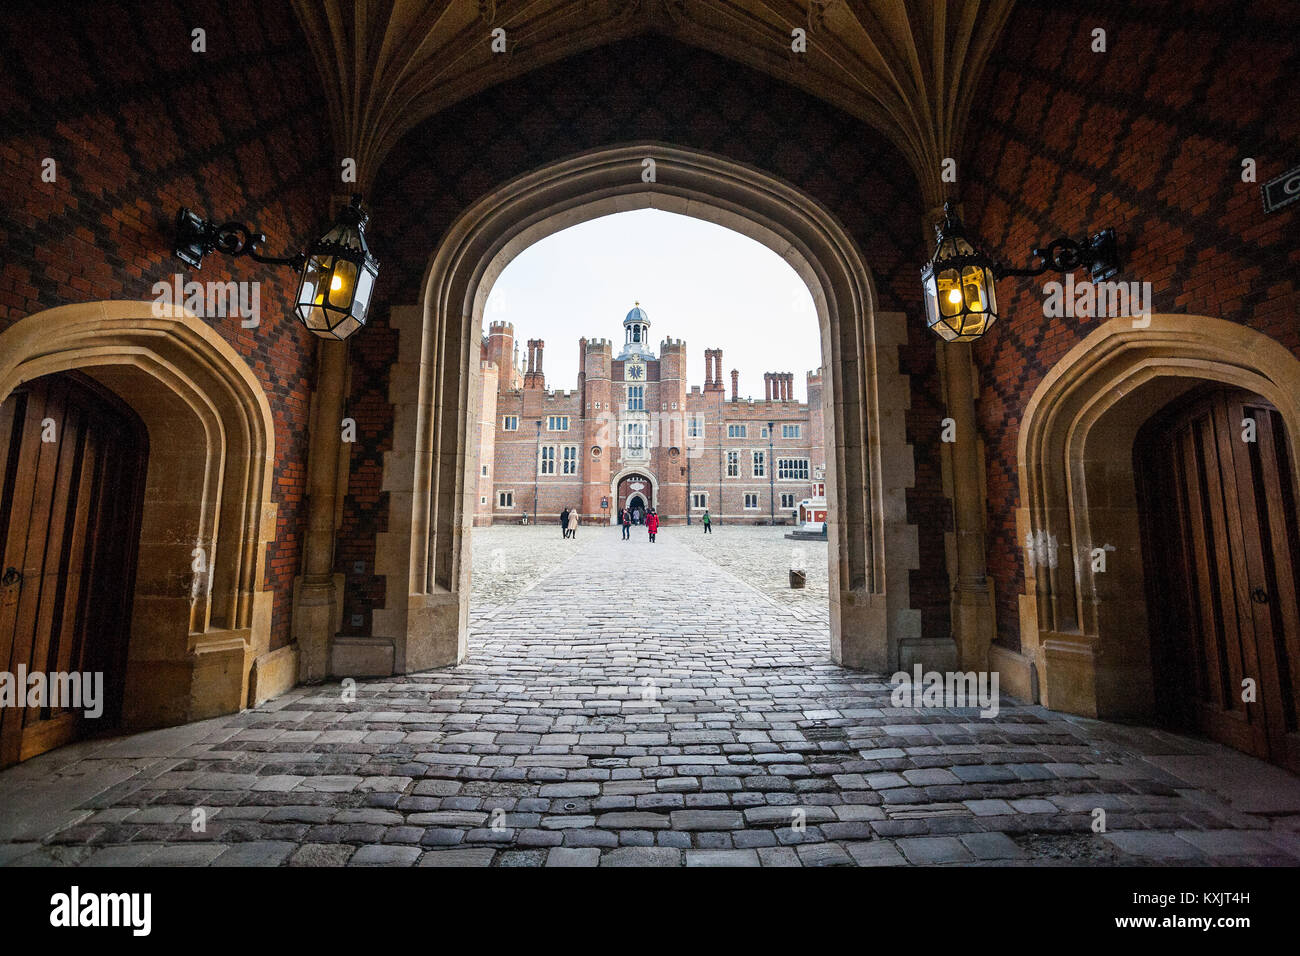 Hampton Court Palace is a royal palace in the borough of Richmond, London. It has two contrasting architectural - Stock Image